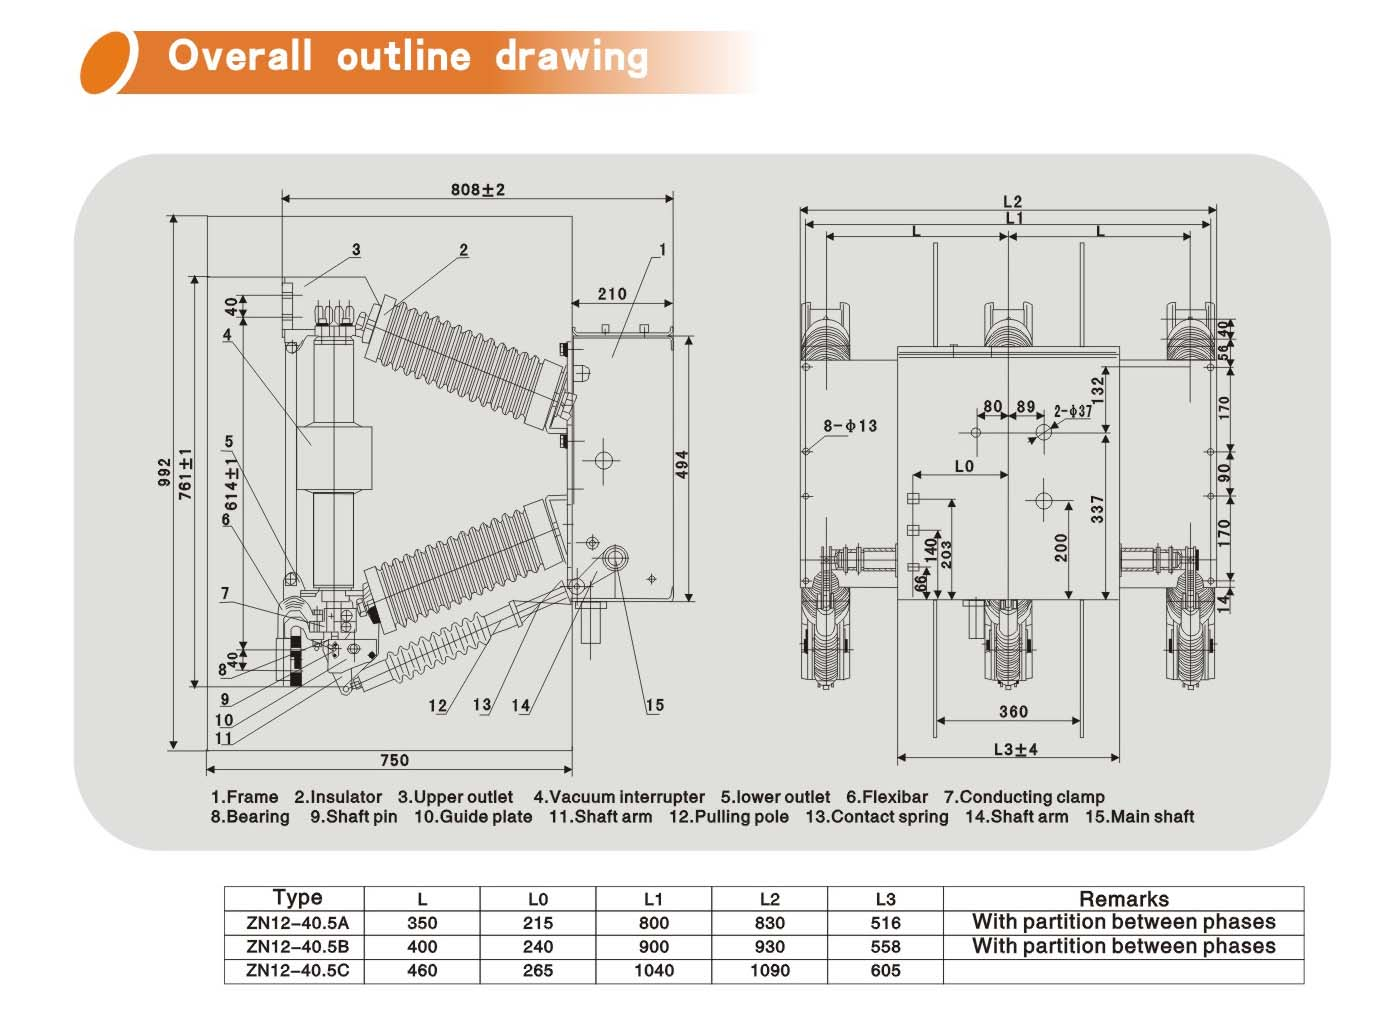 ZN12-40.5 Type VCB Outline Drawing